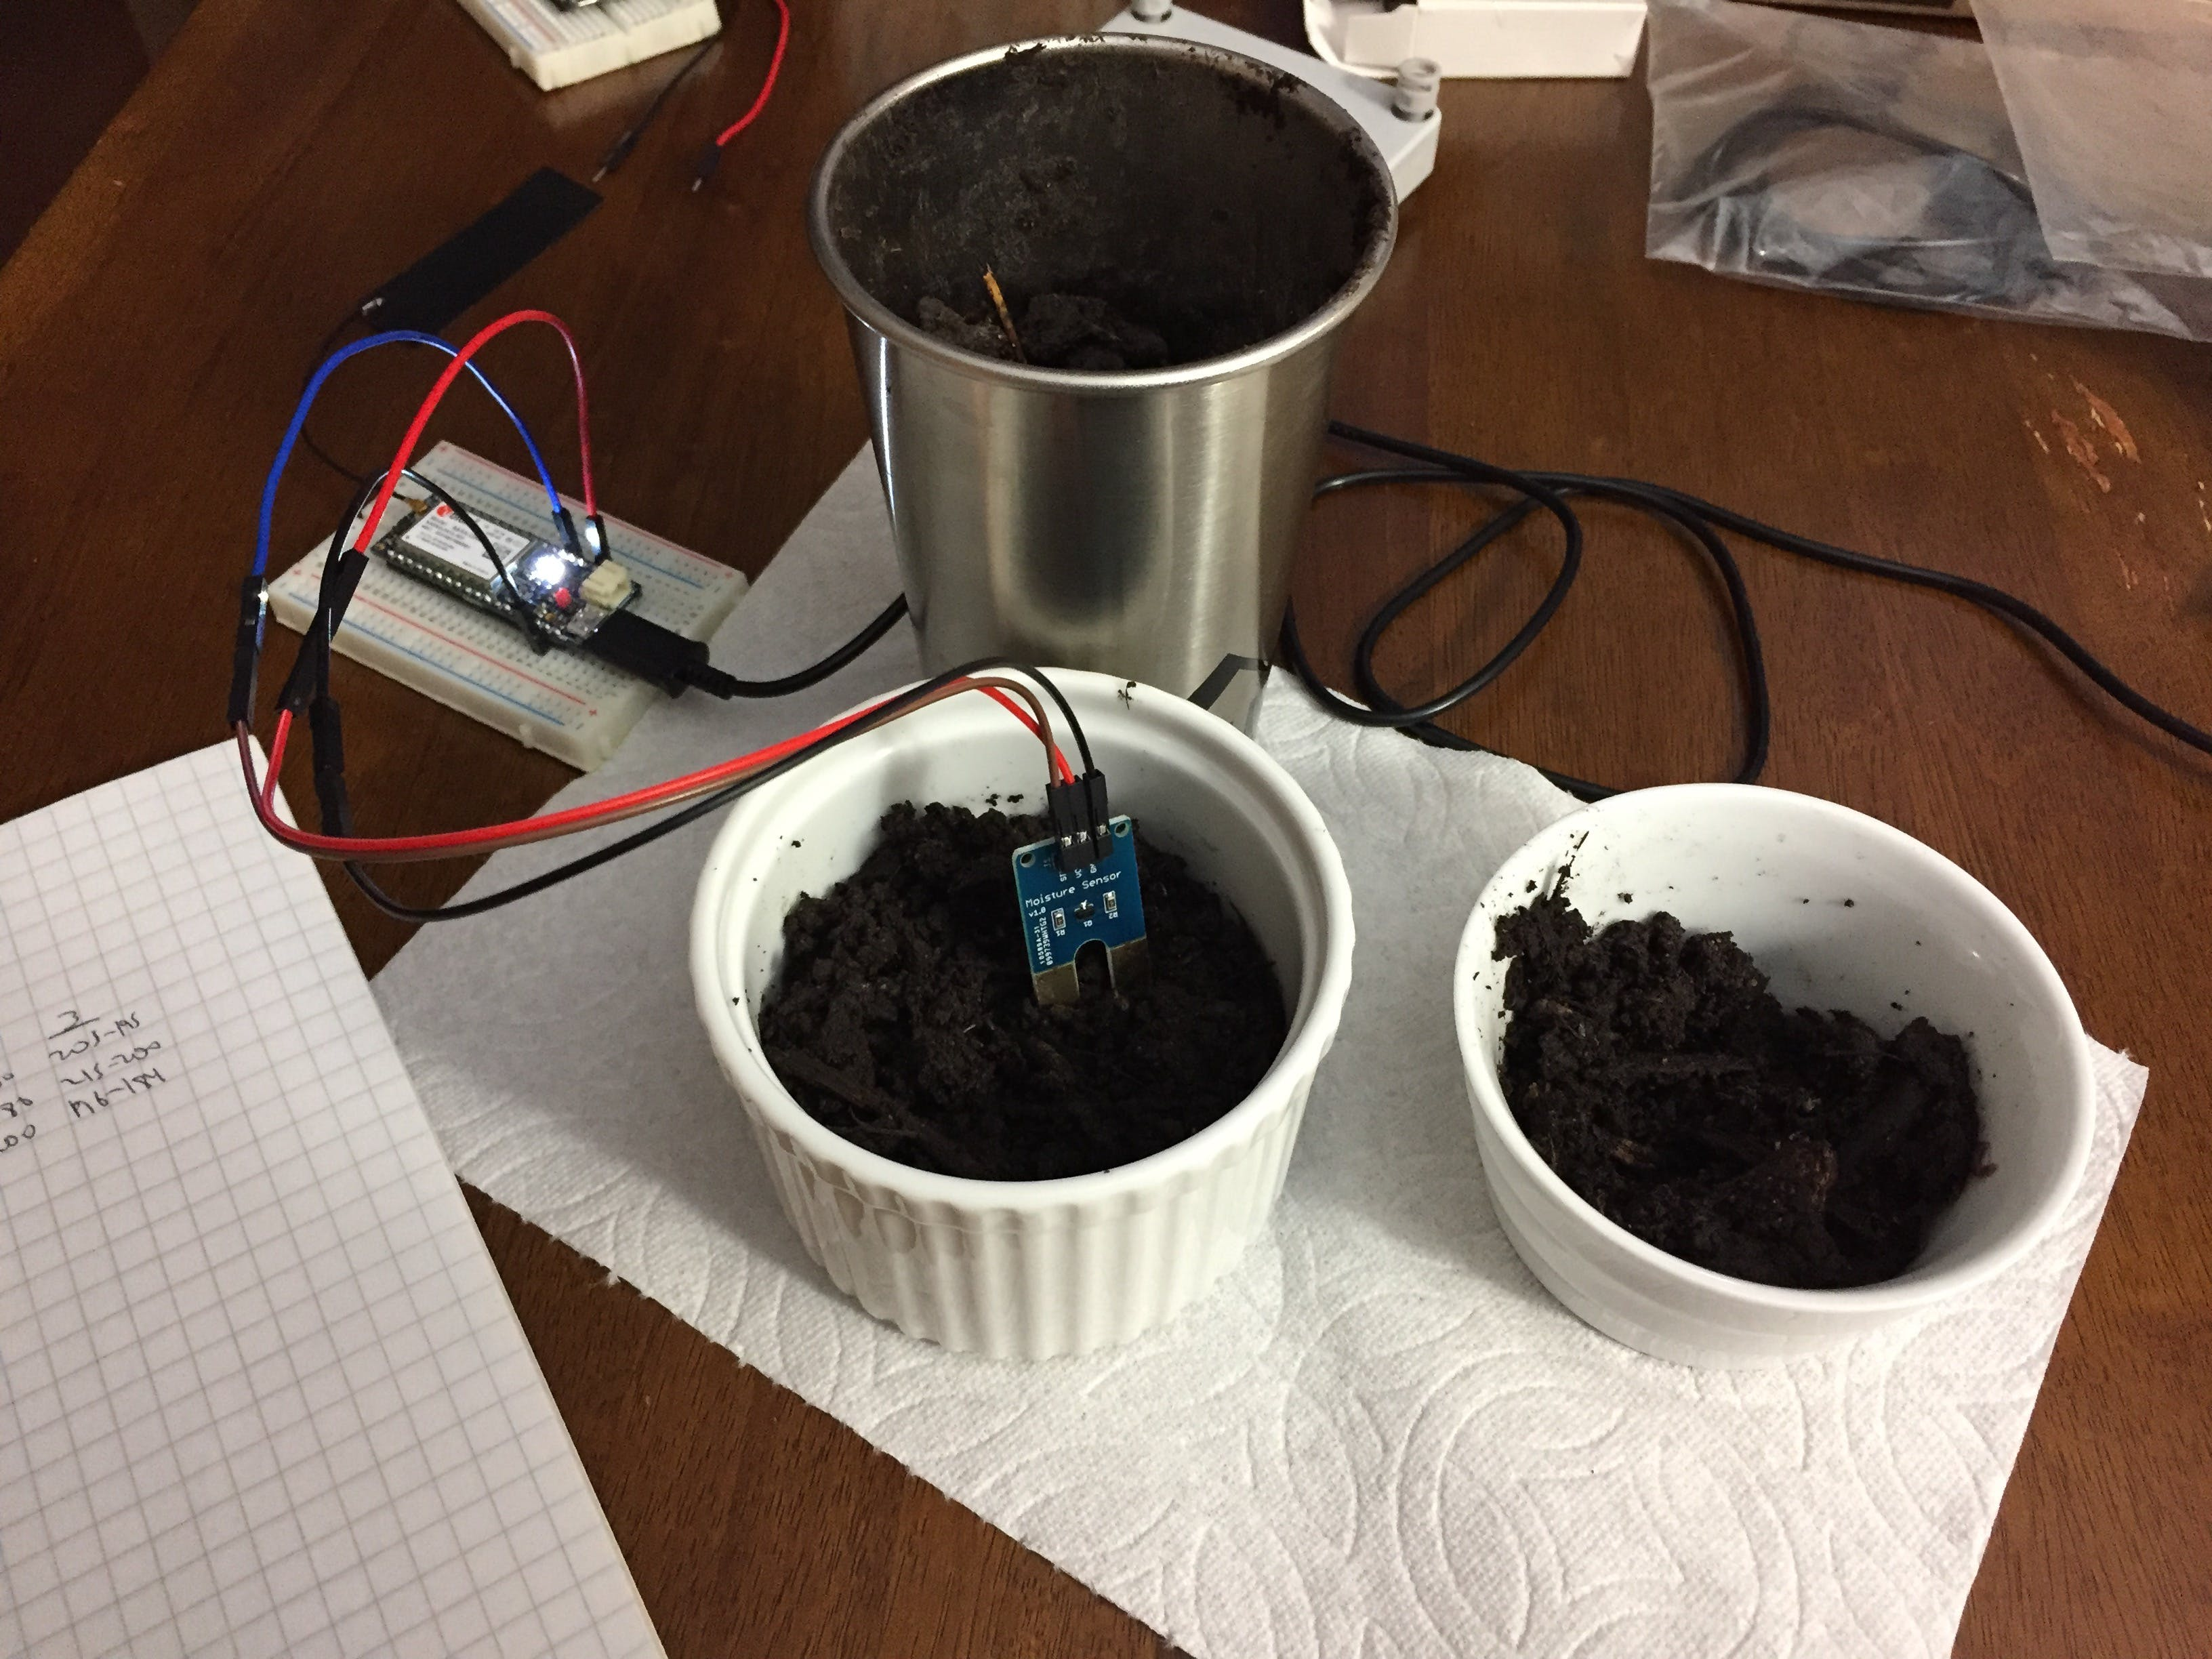 Running the moisture sensor in some test dirt to be sure it all works